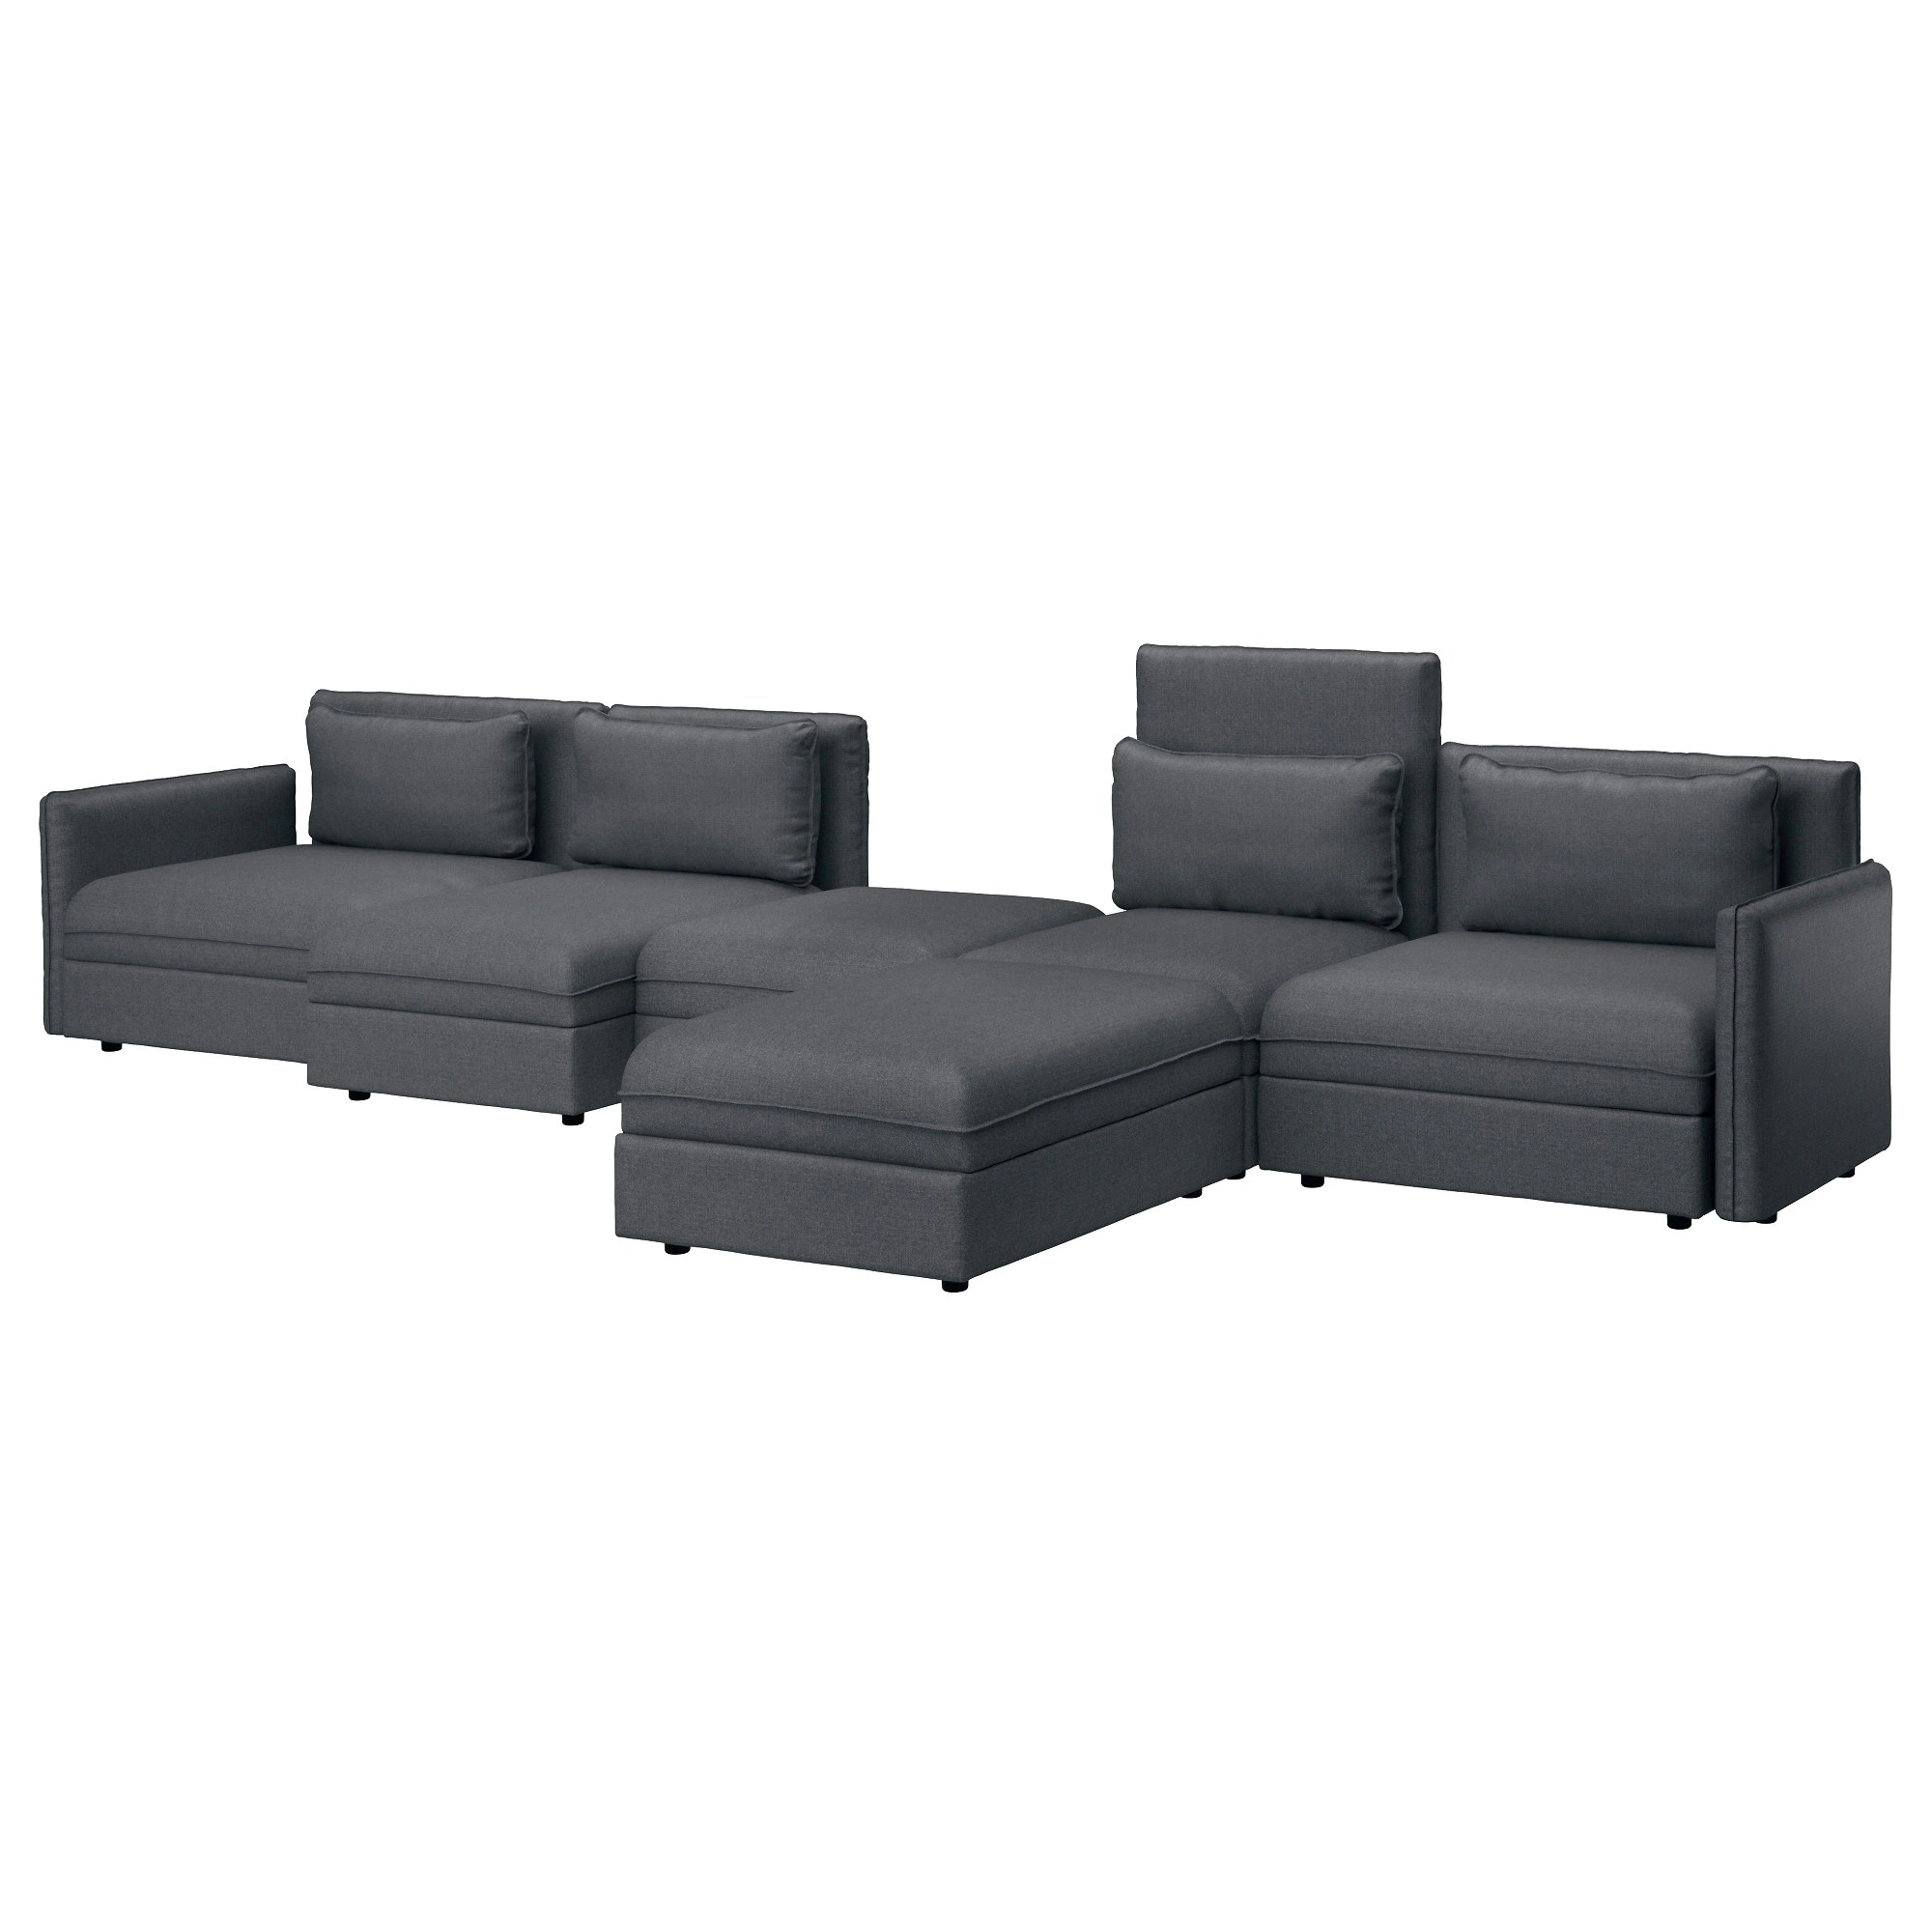 Ledersofa Ikea Kramfors 100 Leather Ikea Sofa Furniture Bring Depth And Modernity To Your